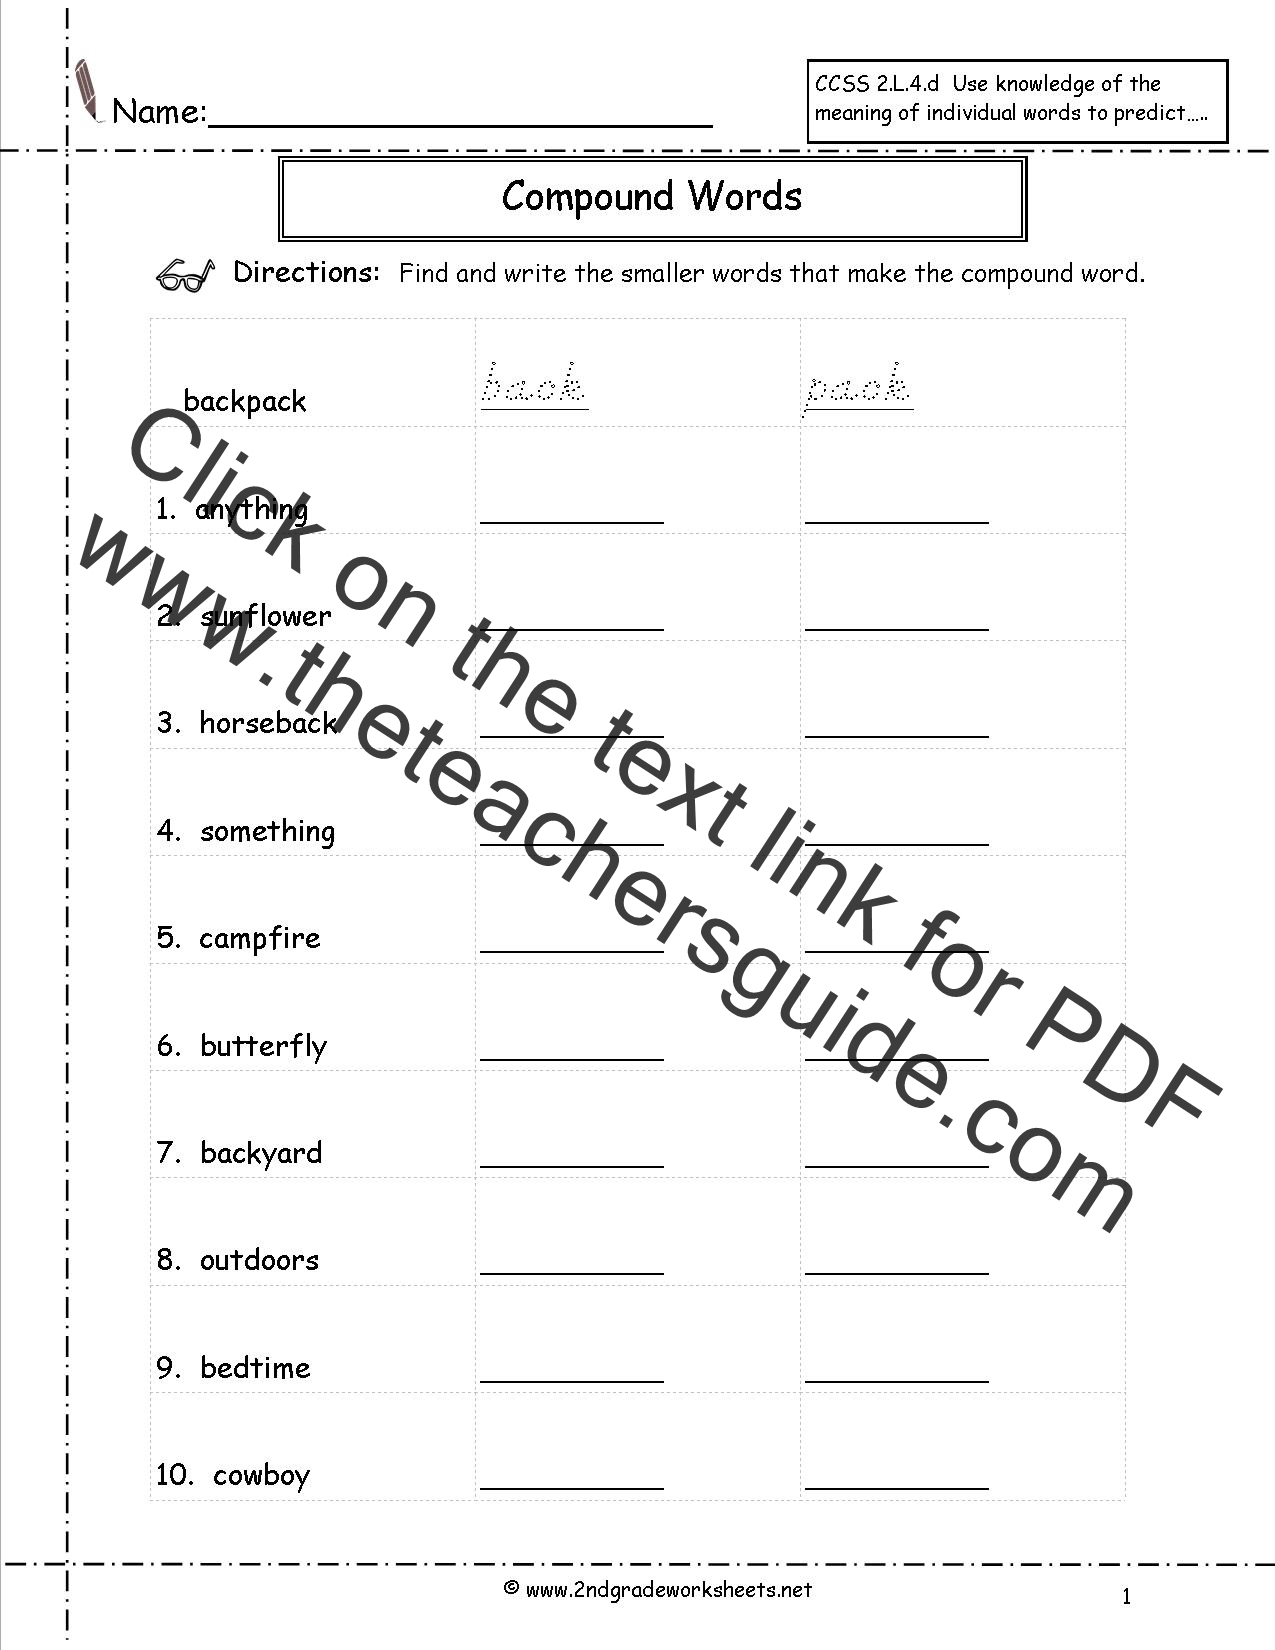 Worksheets Free Printable Contraction Worksheets free languagegrammar worksheets and printouts compound words worksheets